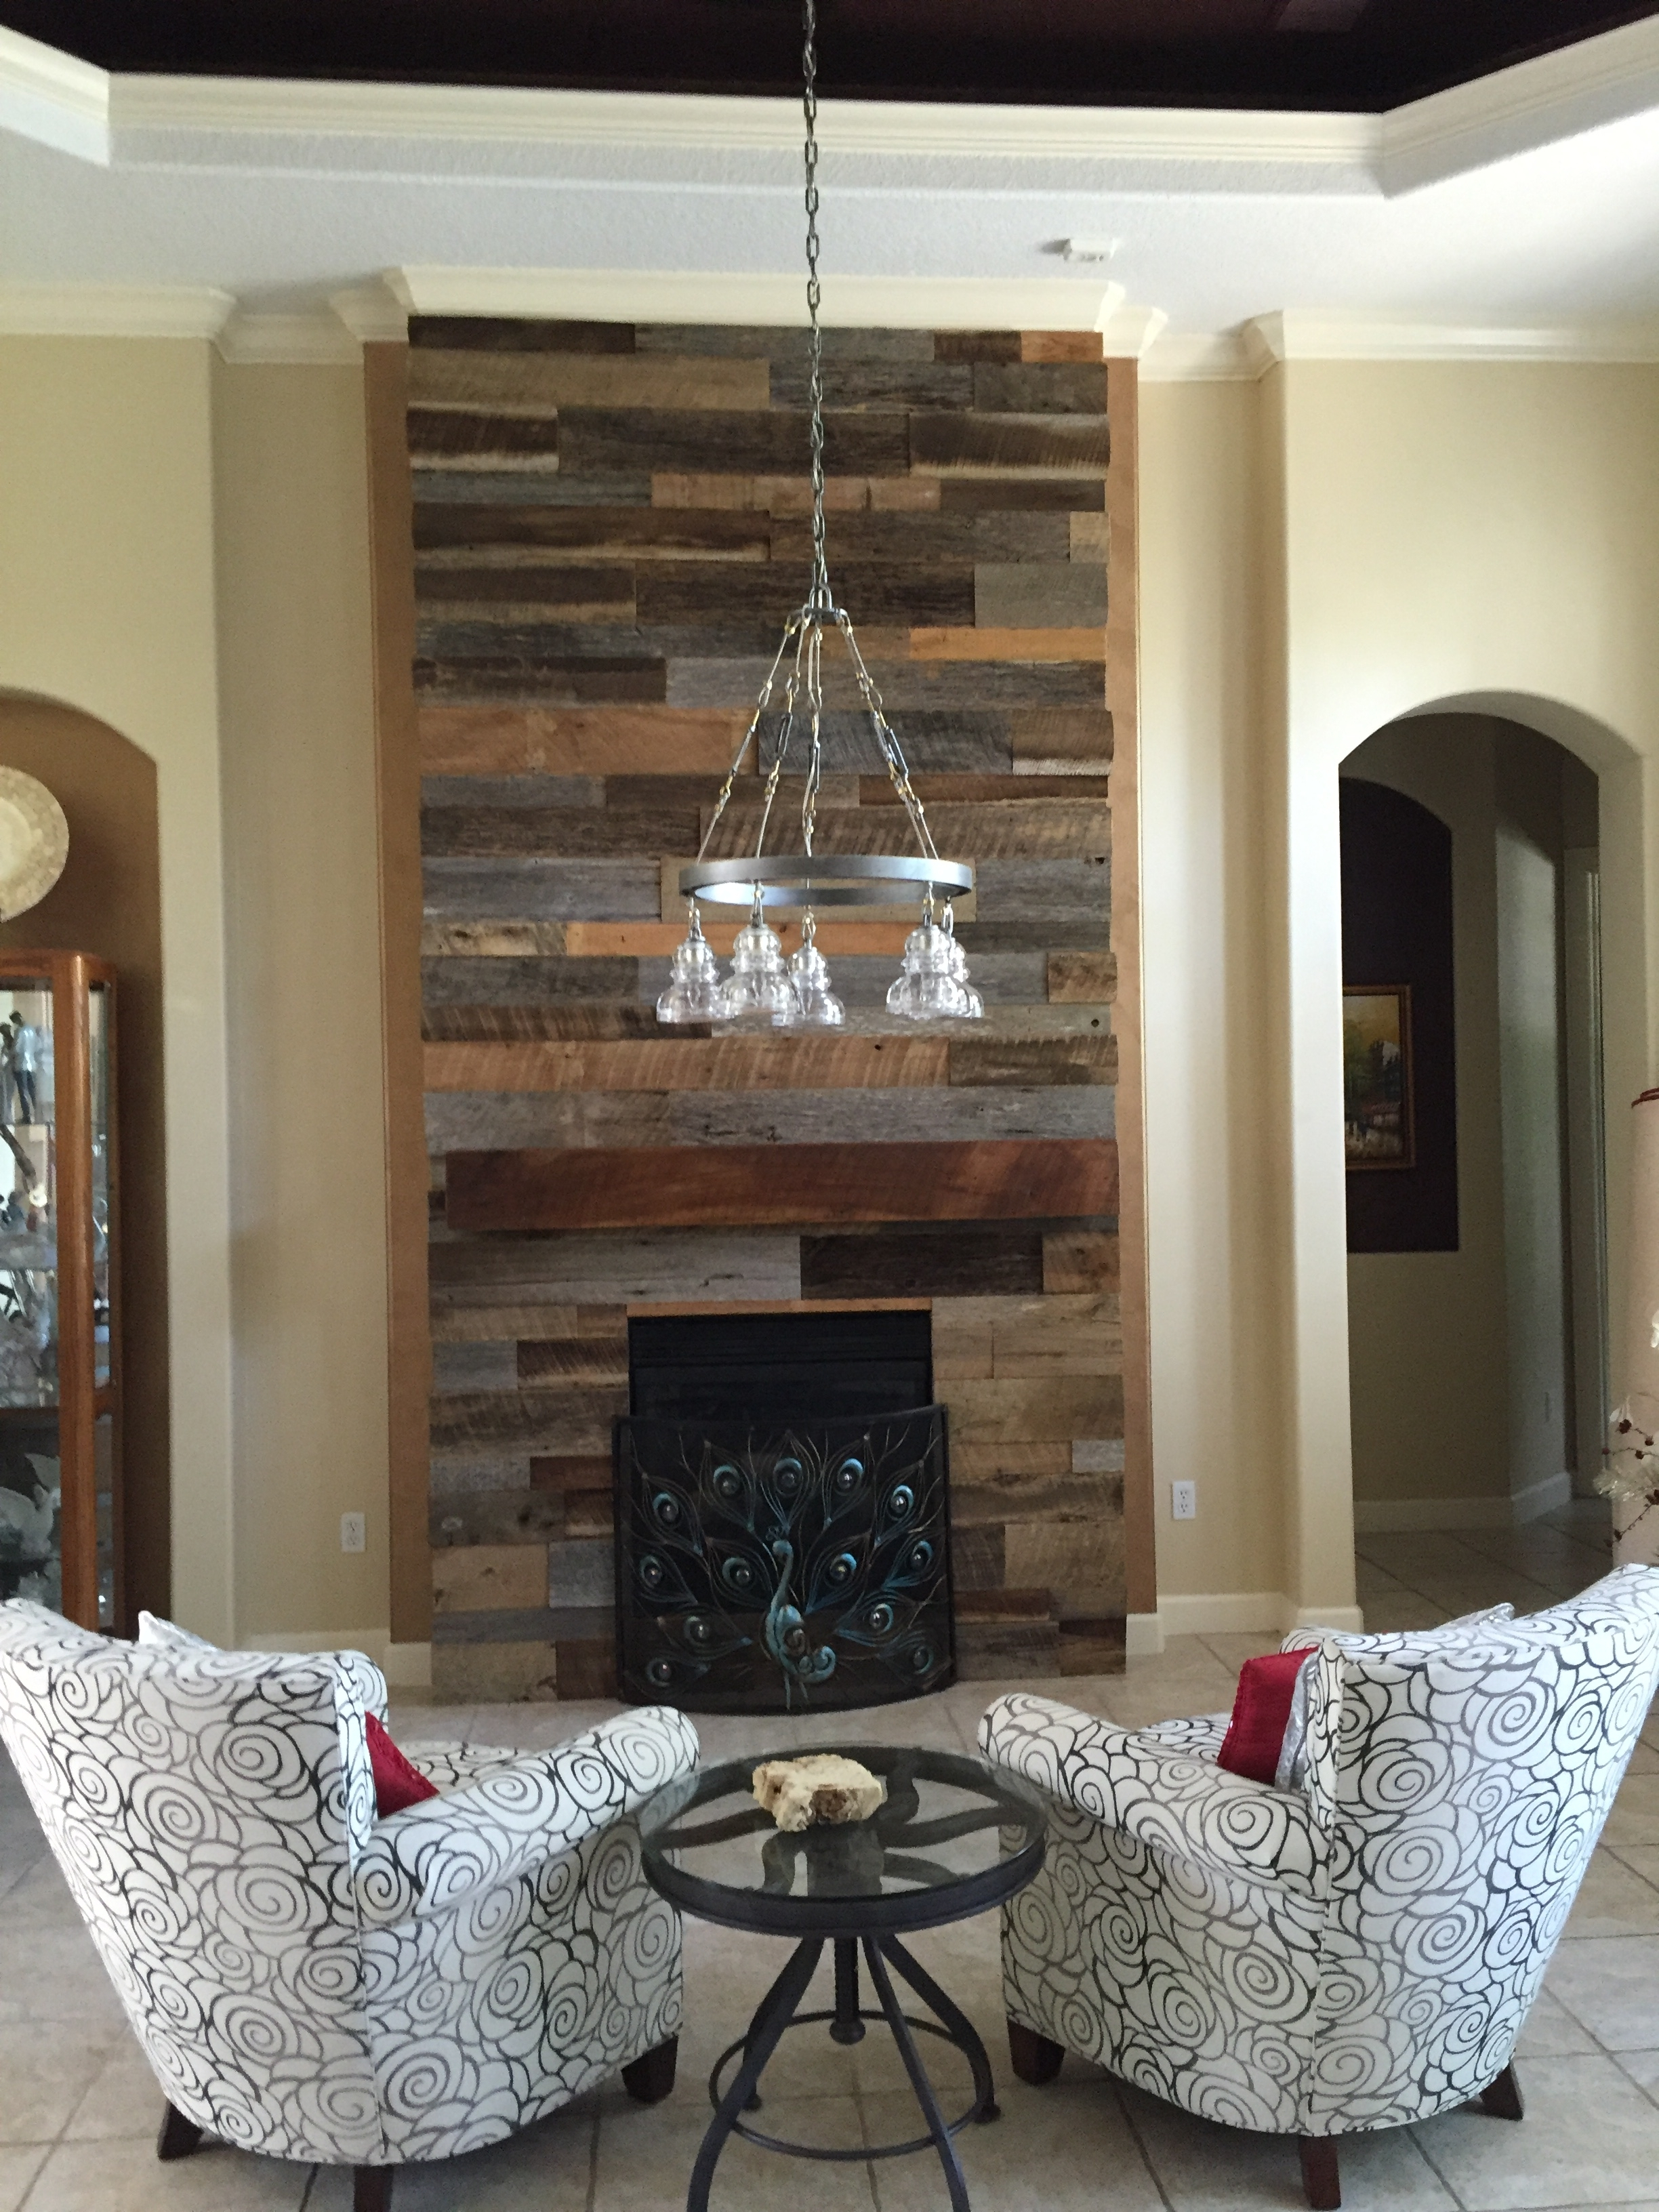 Wood Wall Accent Wood Accent Wall Fireplace Decor For Best And Newest Wood Wall Accents (View 12 of 15)